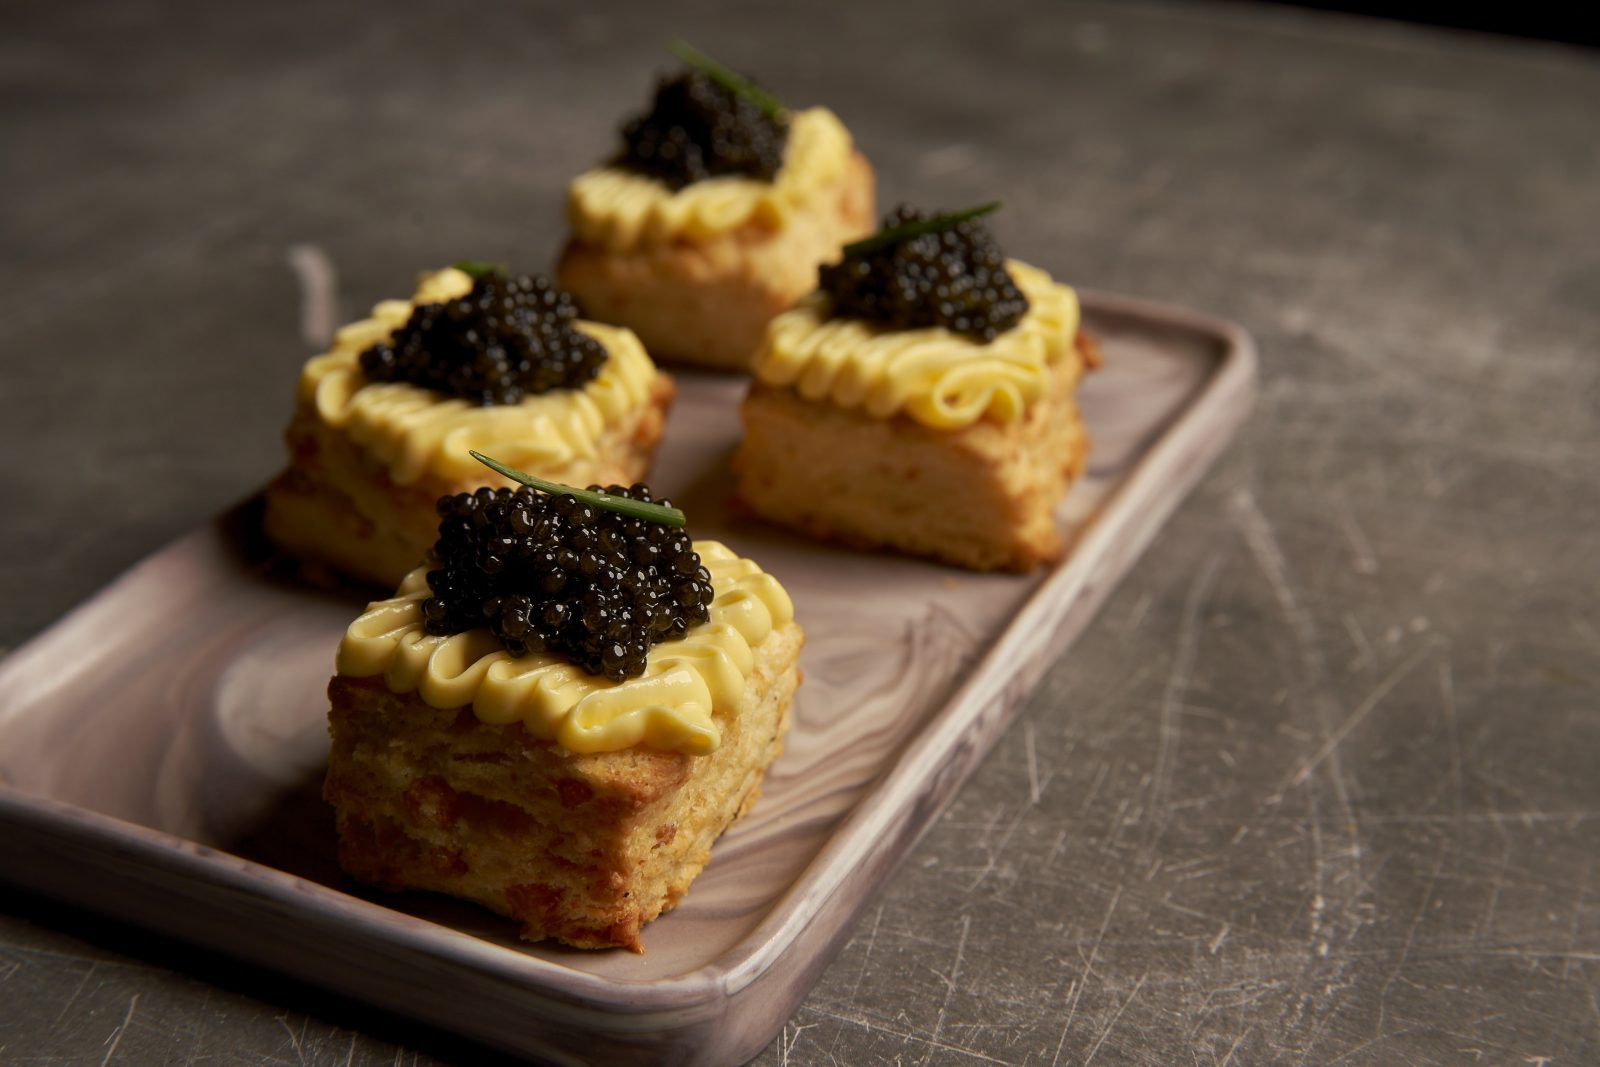 Caviar is Queen at Minnie's